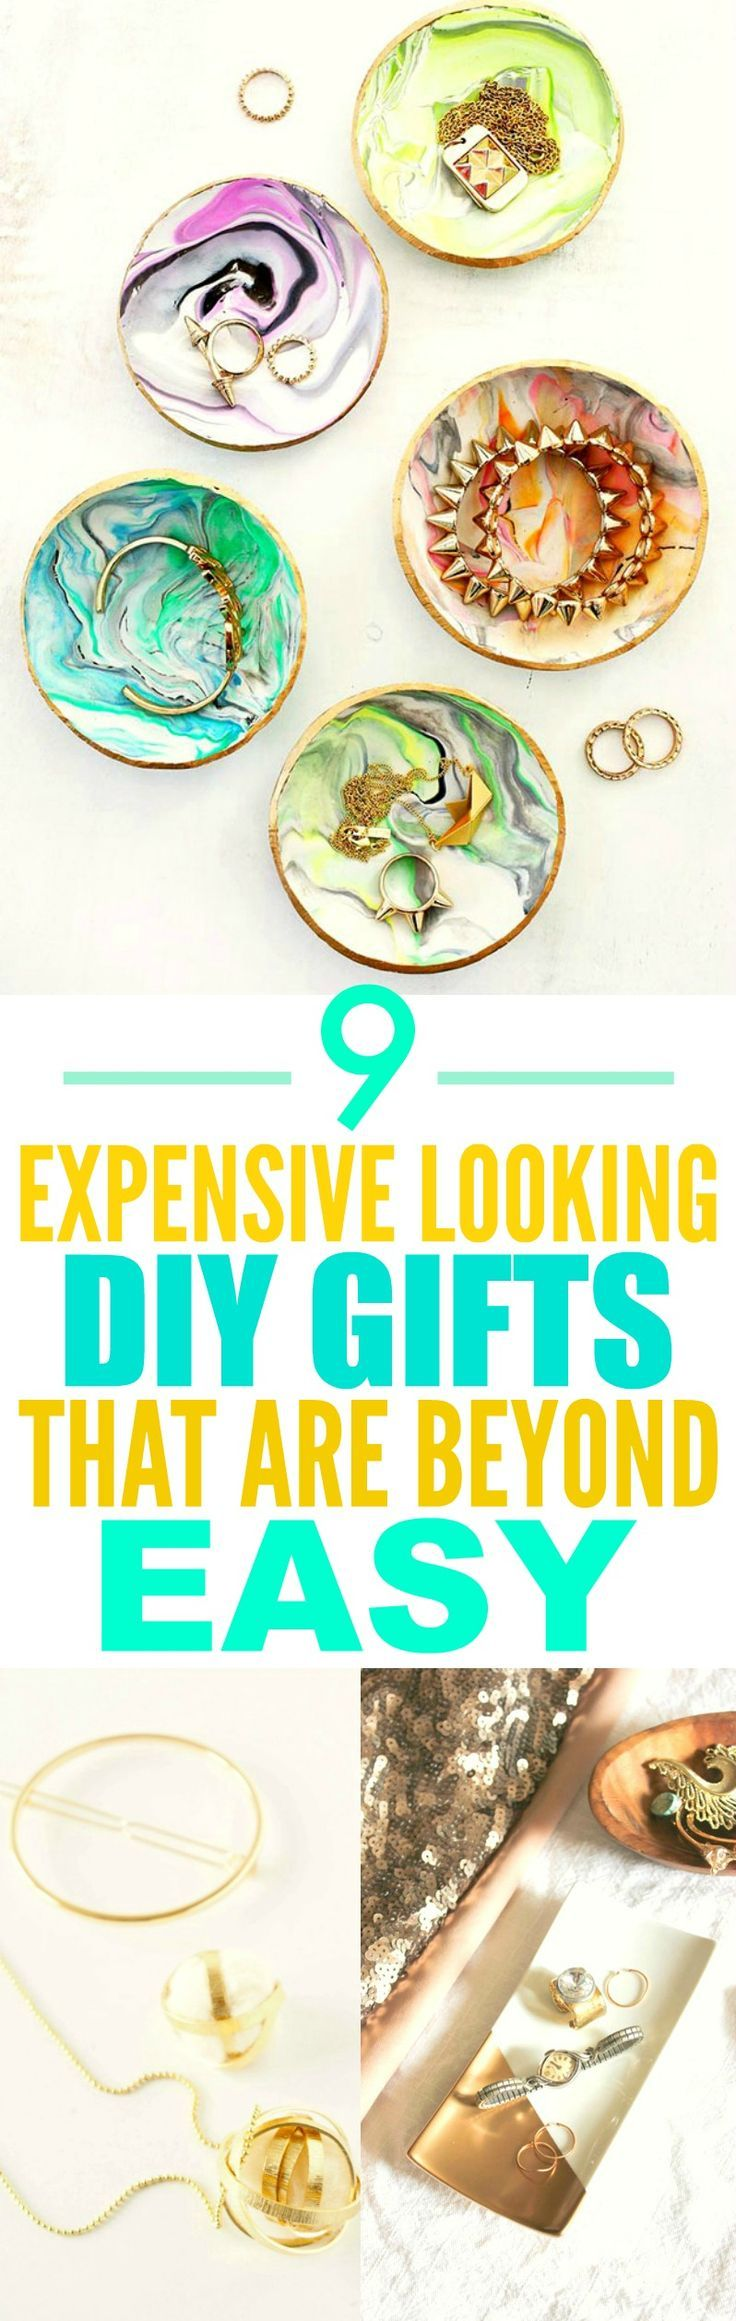 These 9 Expensive Looking DIY gifts are THE BEST! I'm so glad I found these ...